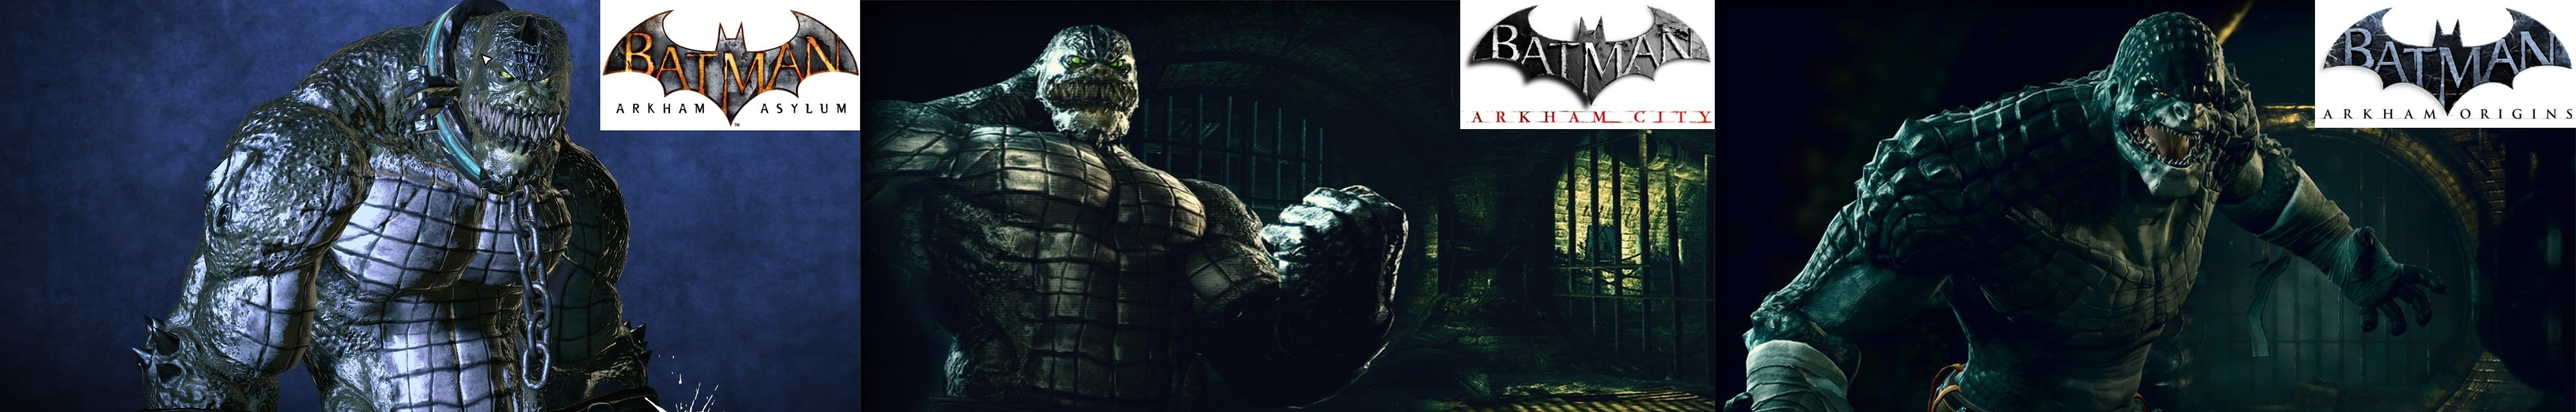 image - hd-wallpapers-killer-croc-arkham-asylum-wallpaper-1600x900